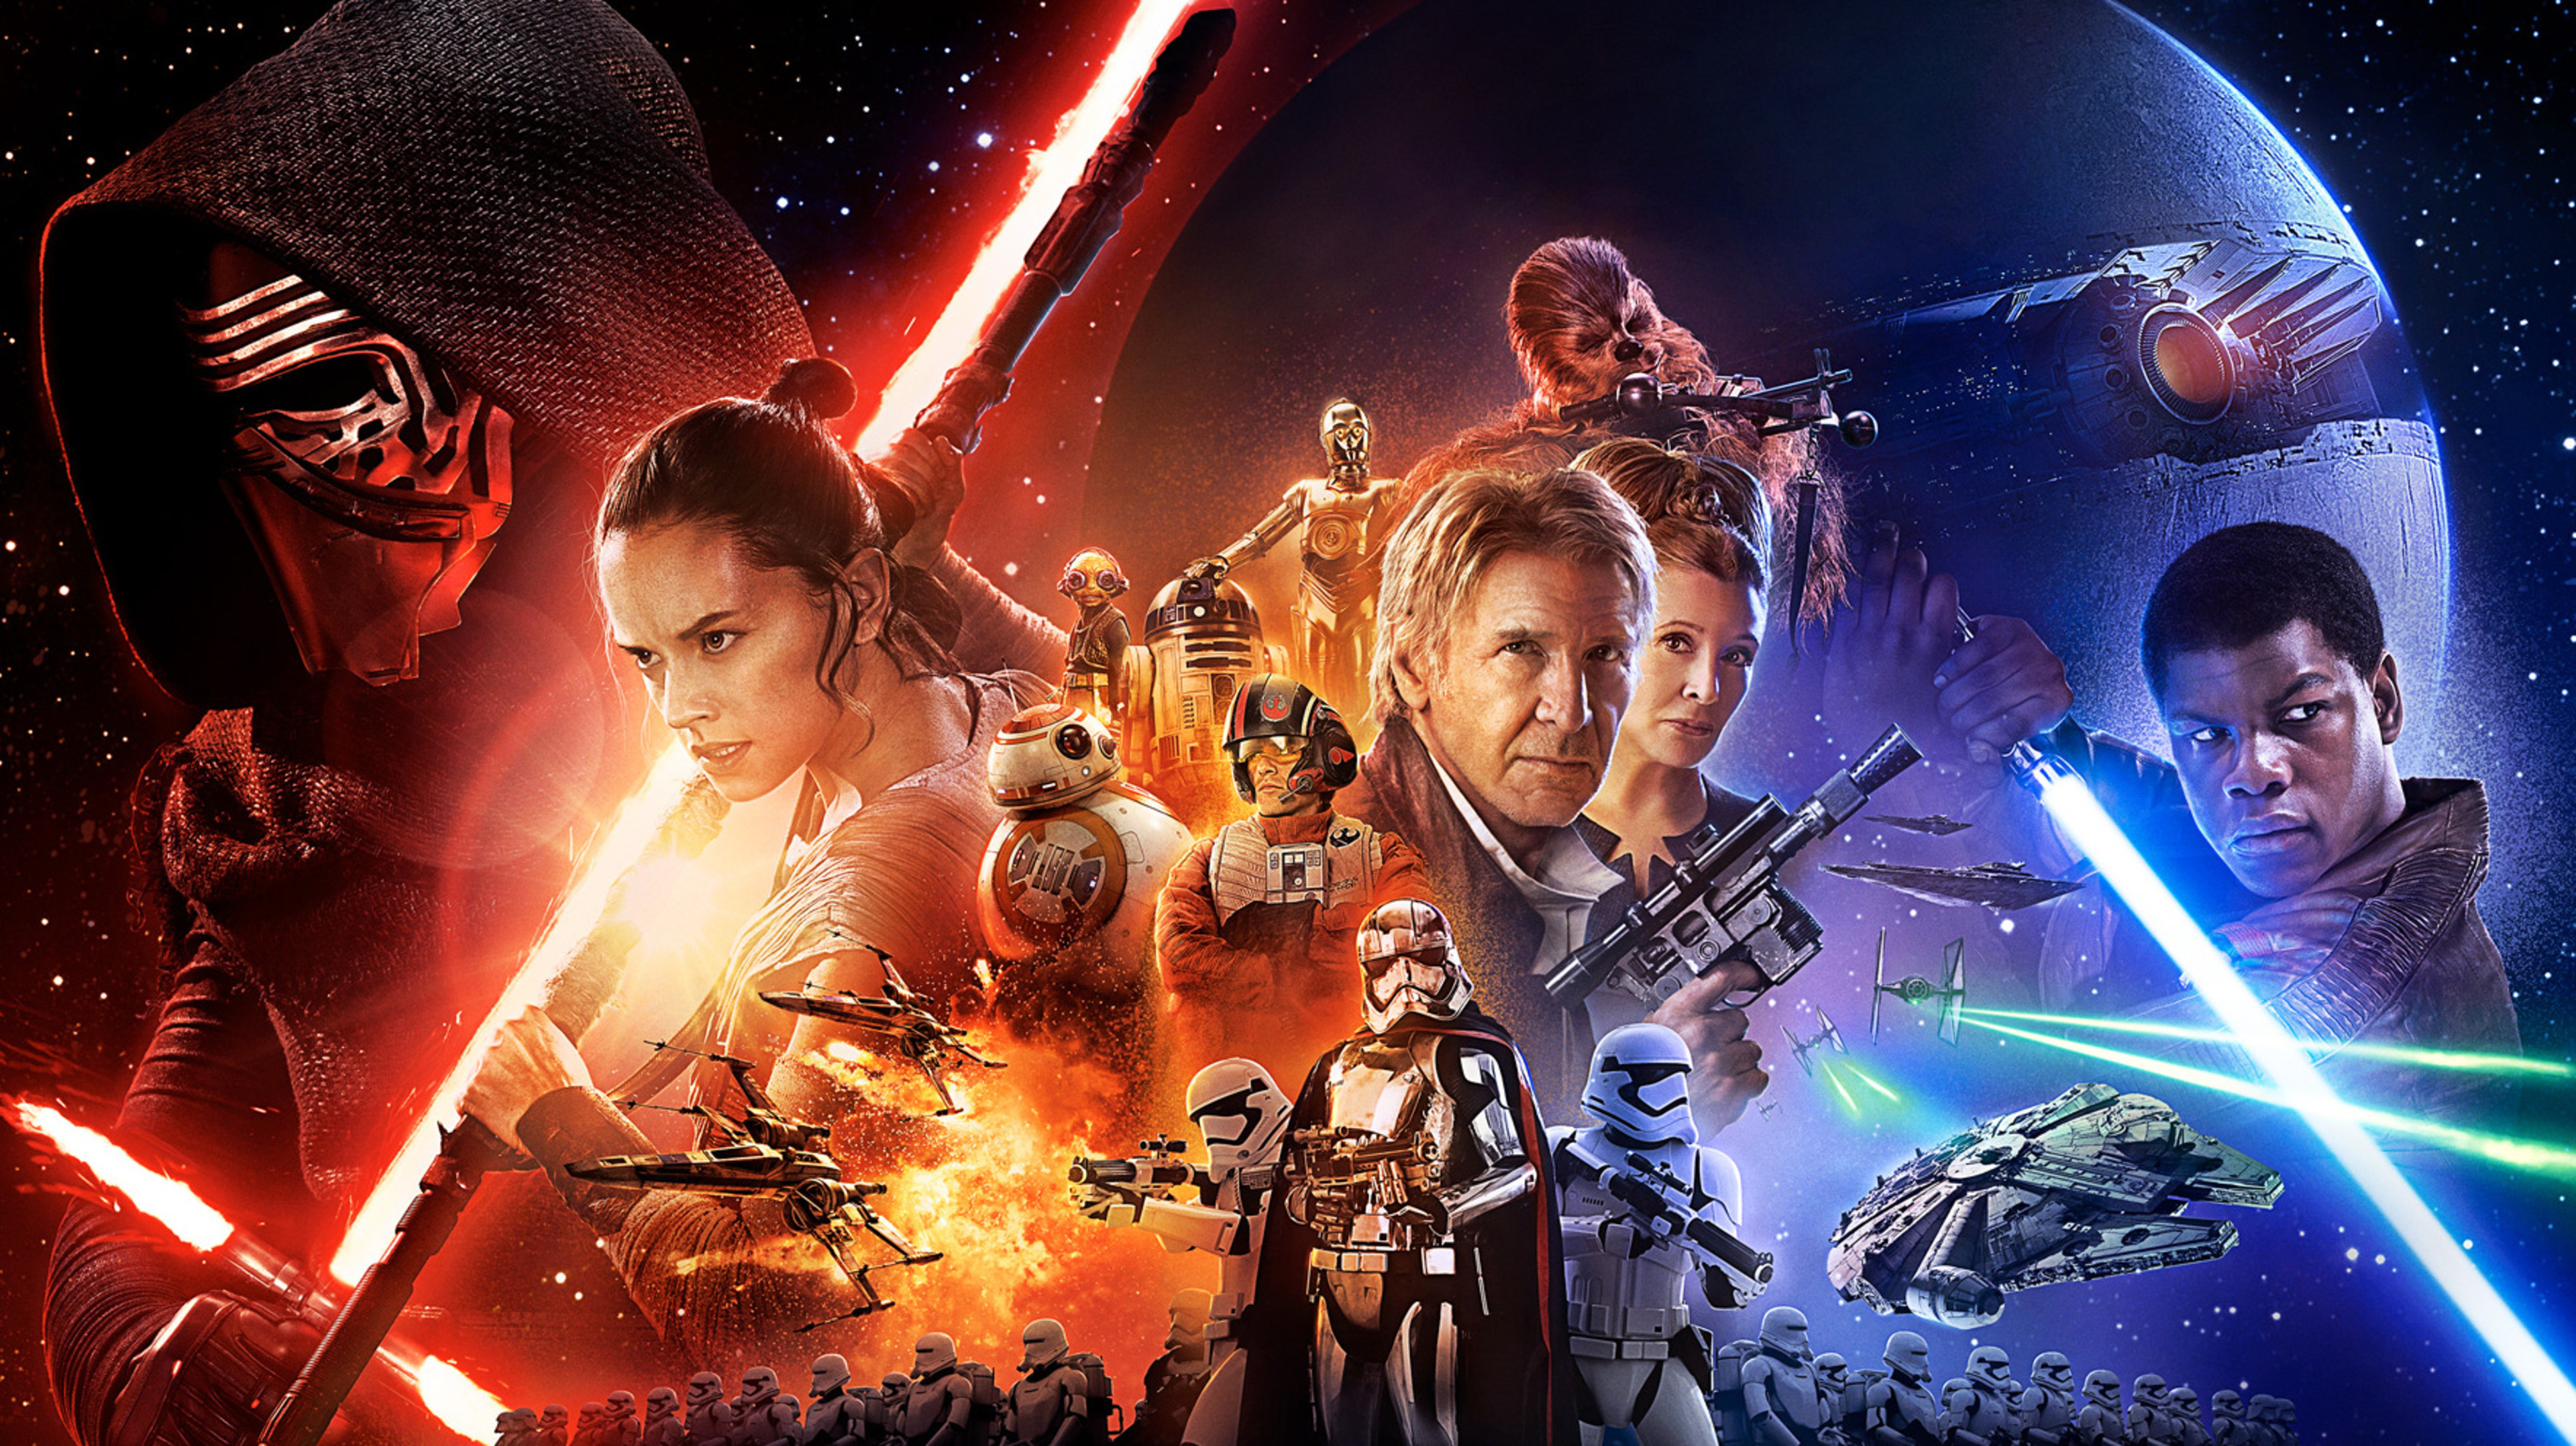 Star Wars: The Force Awakens Movie Review ( Spoilers) – Grog Boat ...